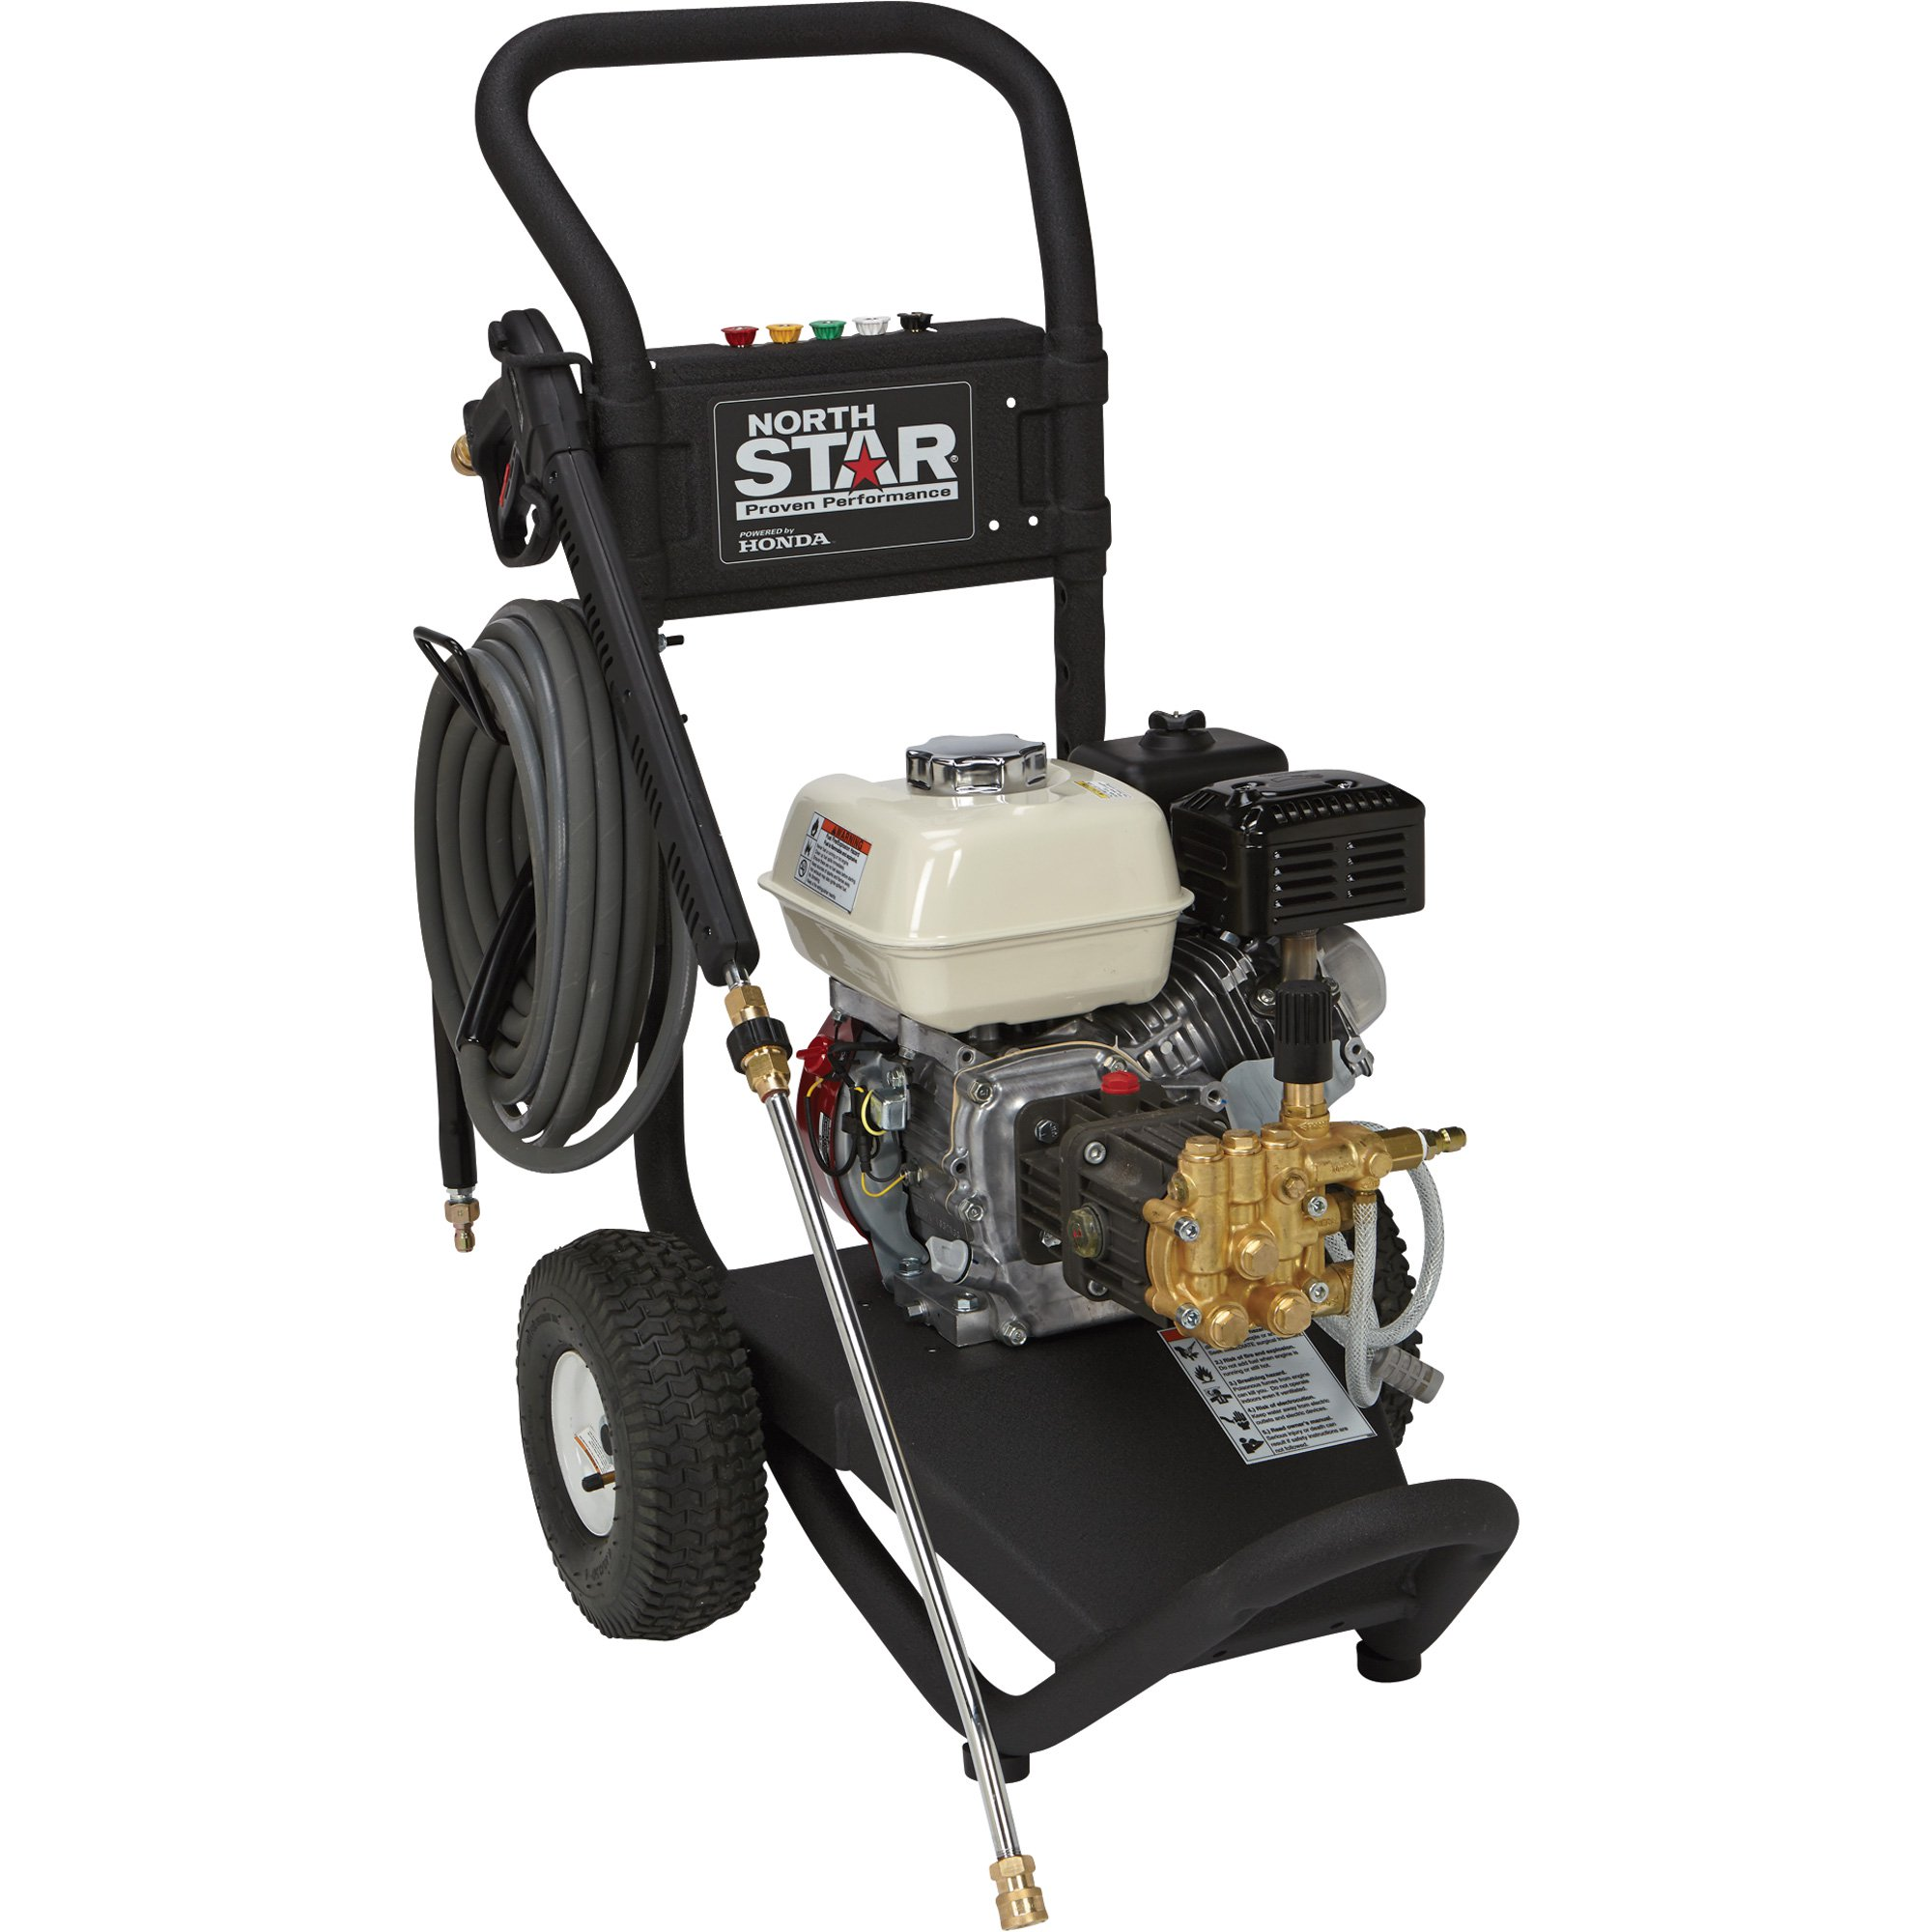 NorthStar 15781120 - Gas Cold Water Pressure Washer - 3,000 PSI, 2.5 GPM, Honda Engine - FREE SHIPPING